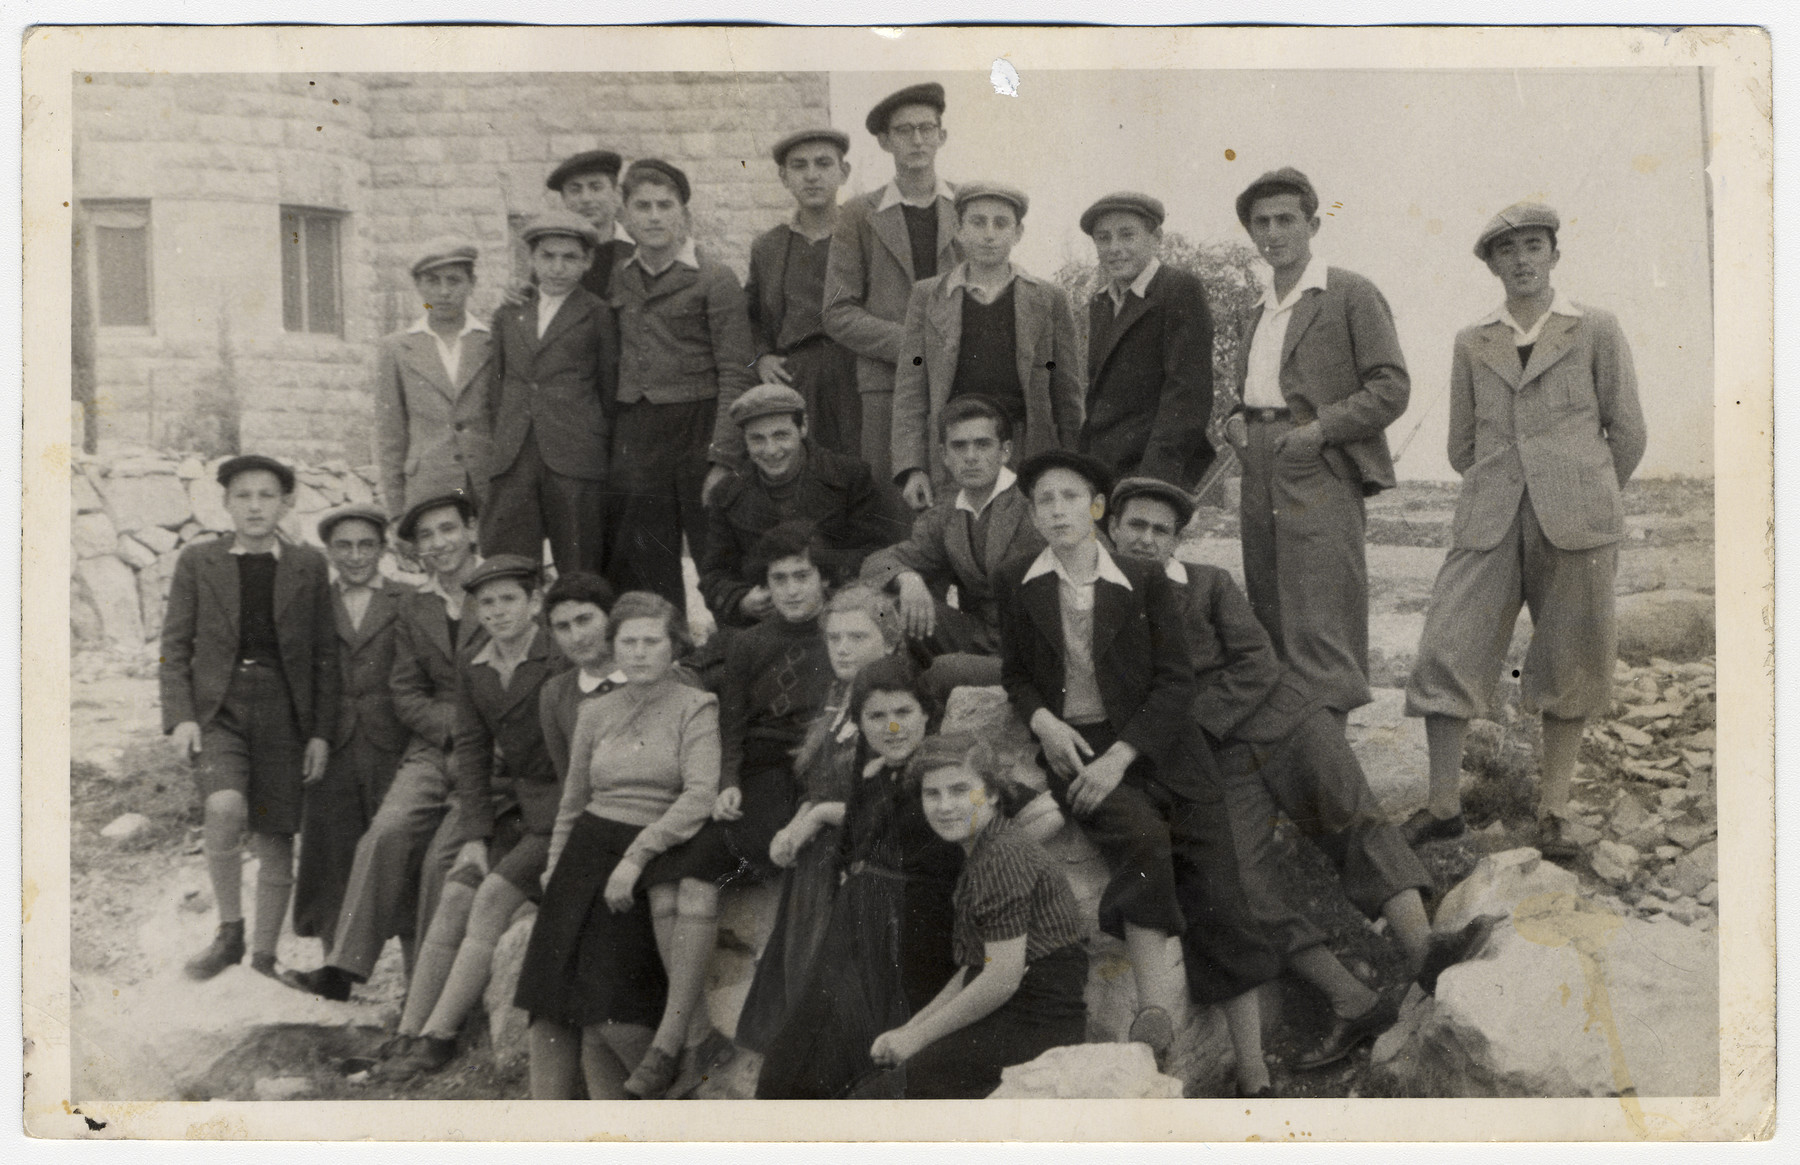 Recent Youth Aliyah immigrants to Palestine gather in front of the Horev boarding school.  Among those pictured is Meir Schwarz, first row, second from the left.